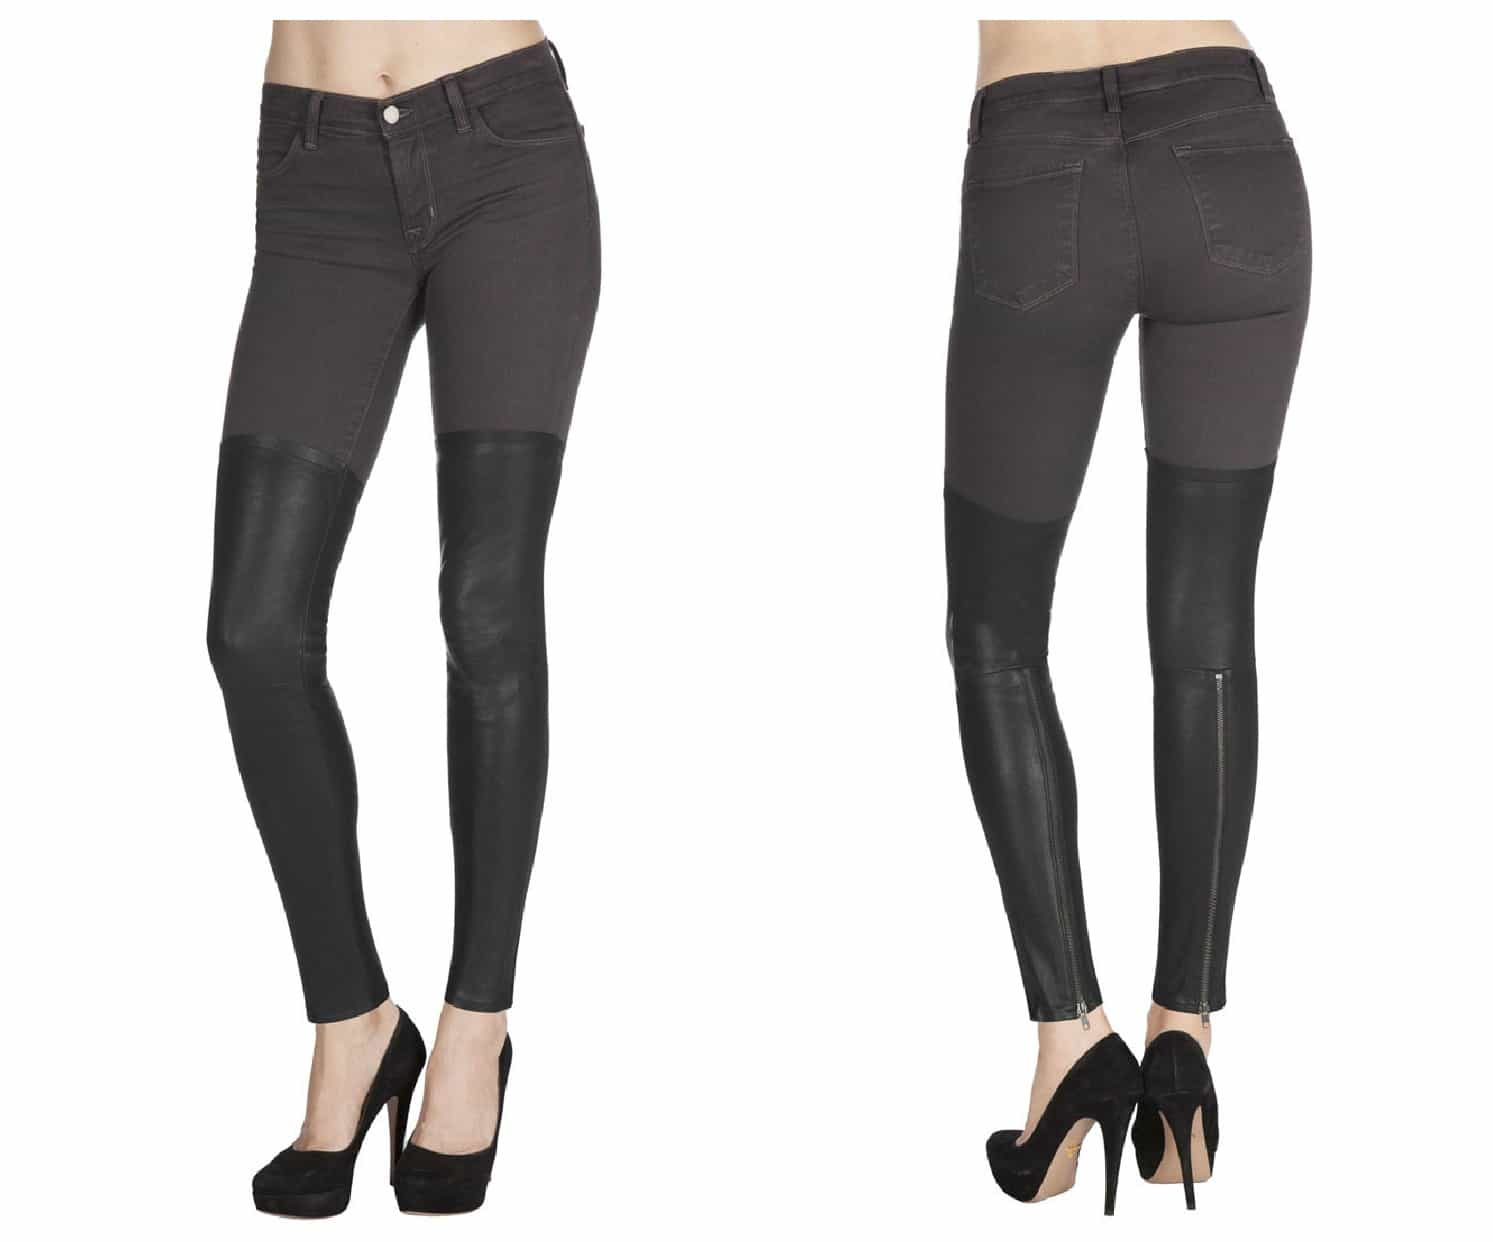 SHOP J BRAND MINX IN VICIOUS AT TRILOGY